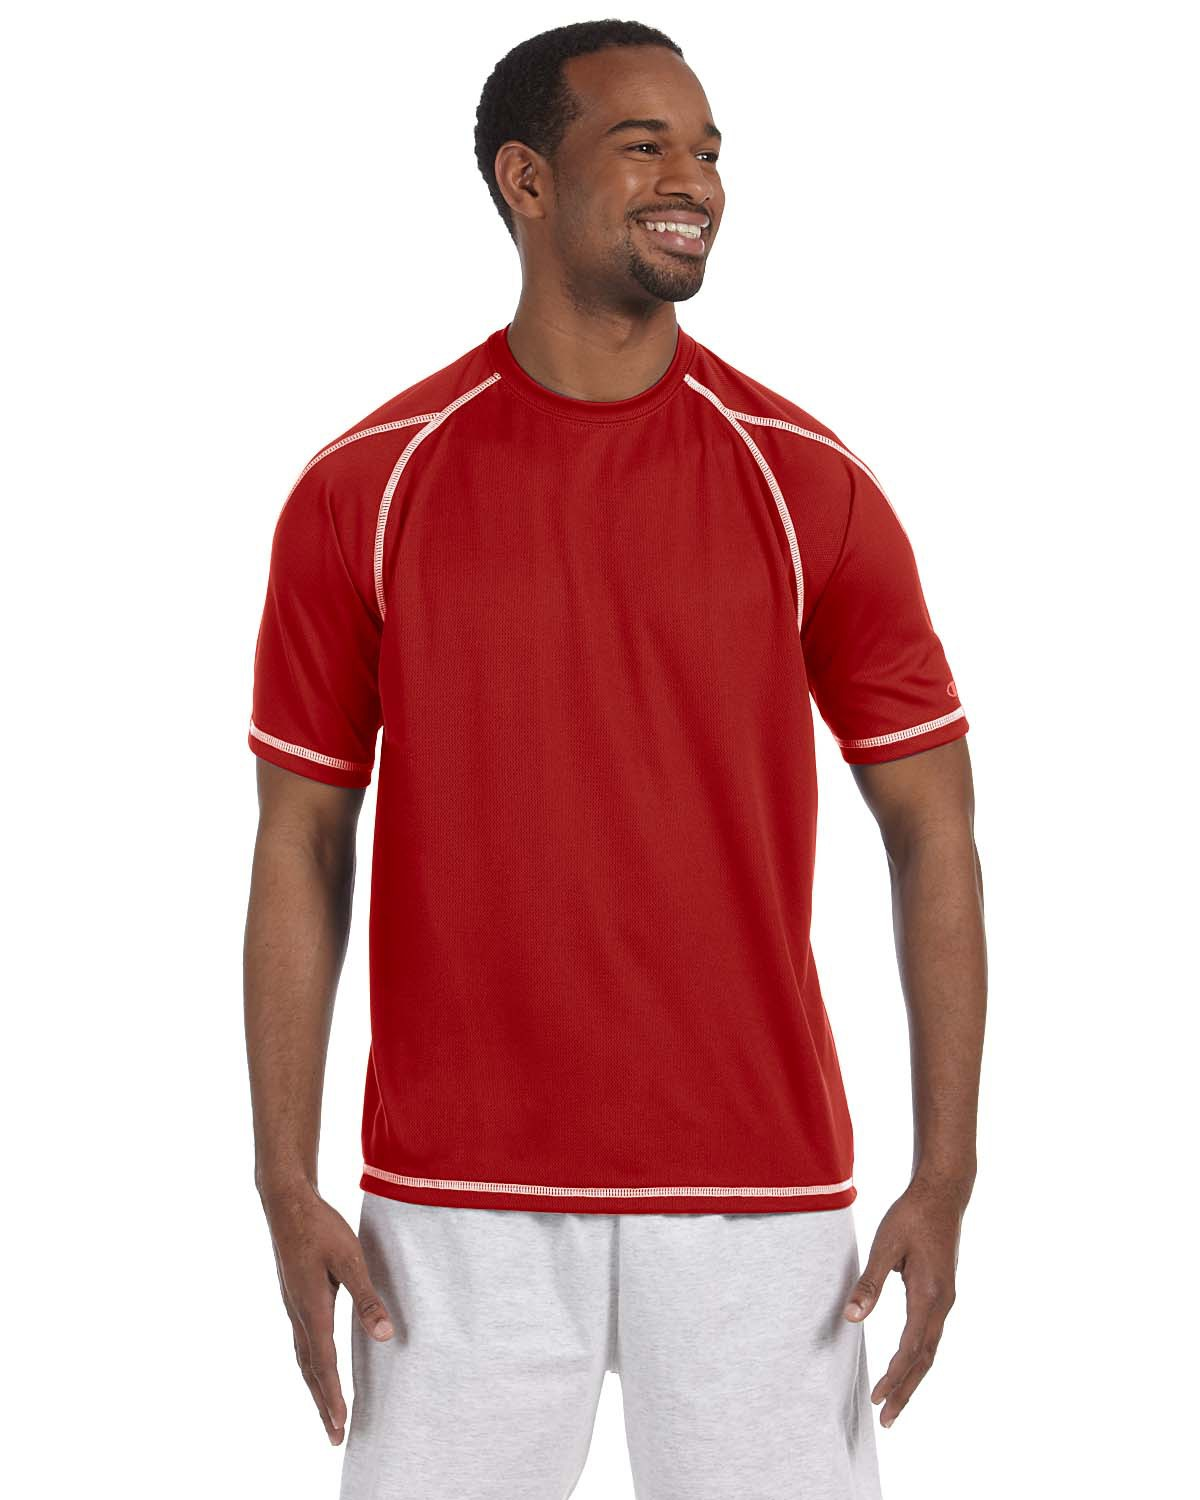 Champion T2057 Men Double Dry 4.1 oz. Mesh T-Shirt Scarlet at GotApparel